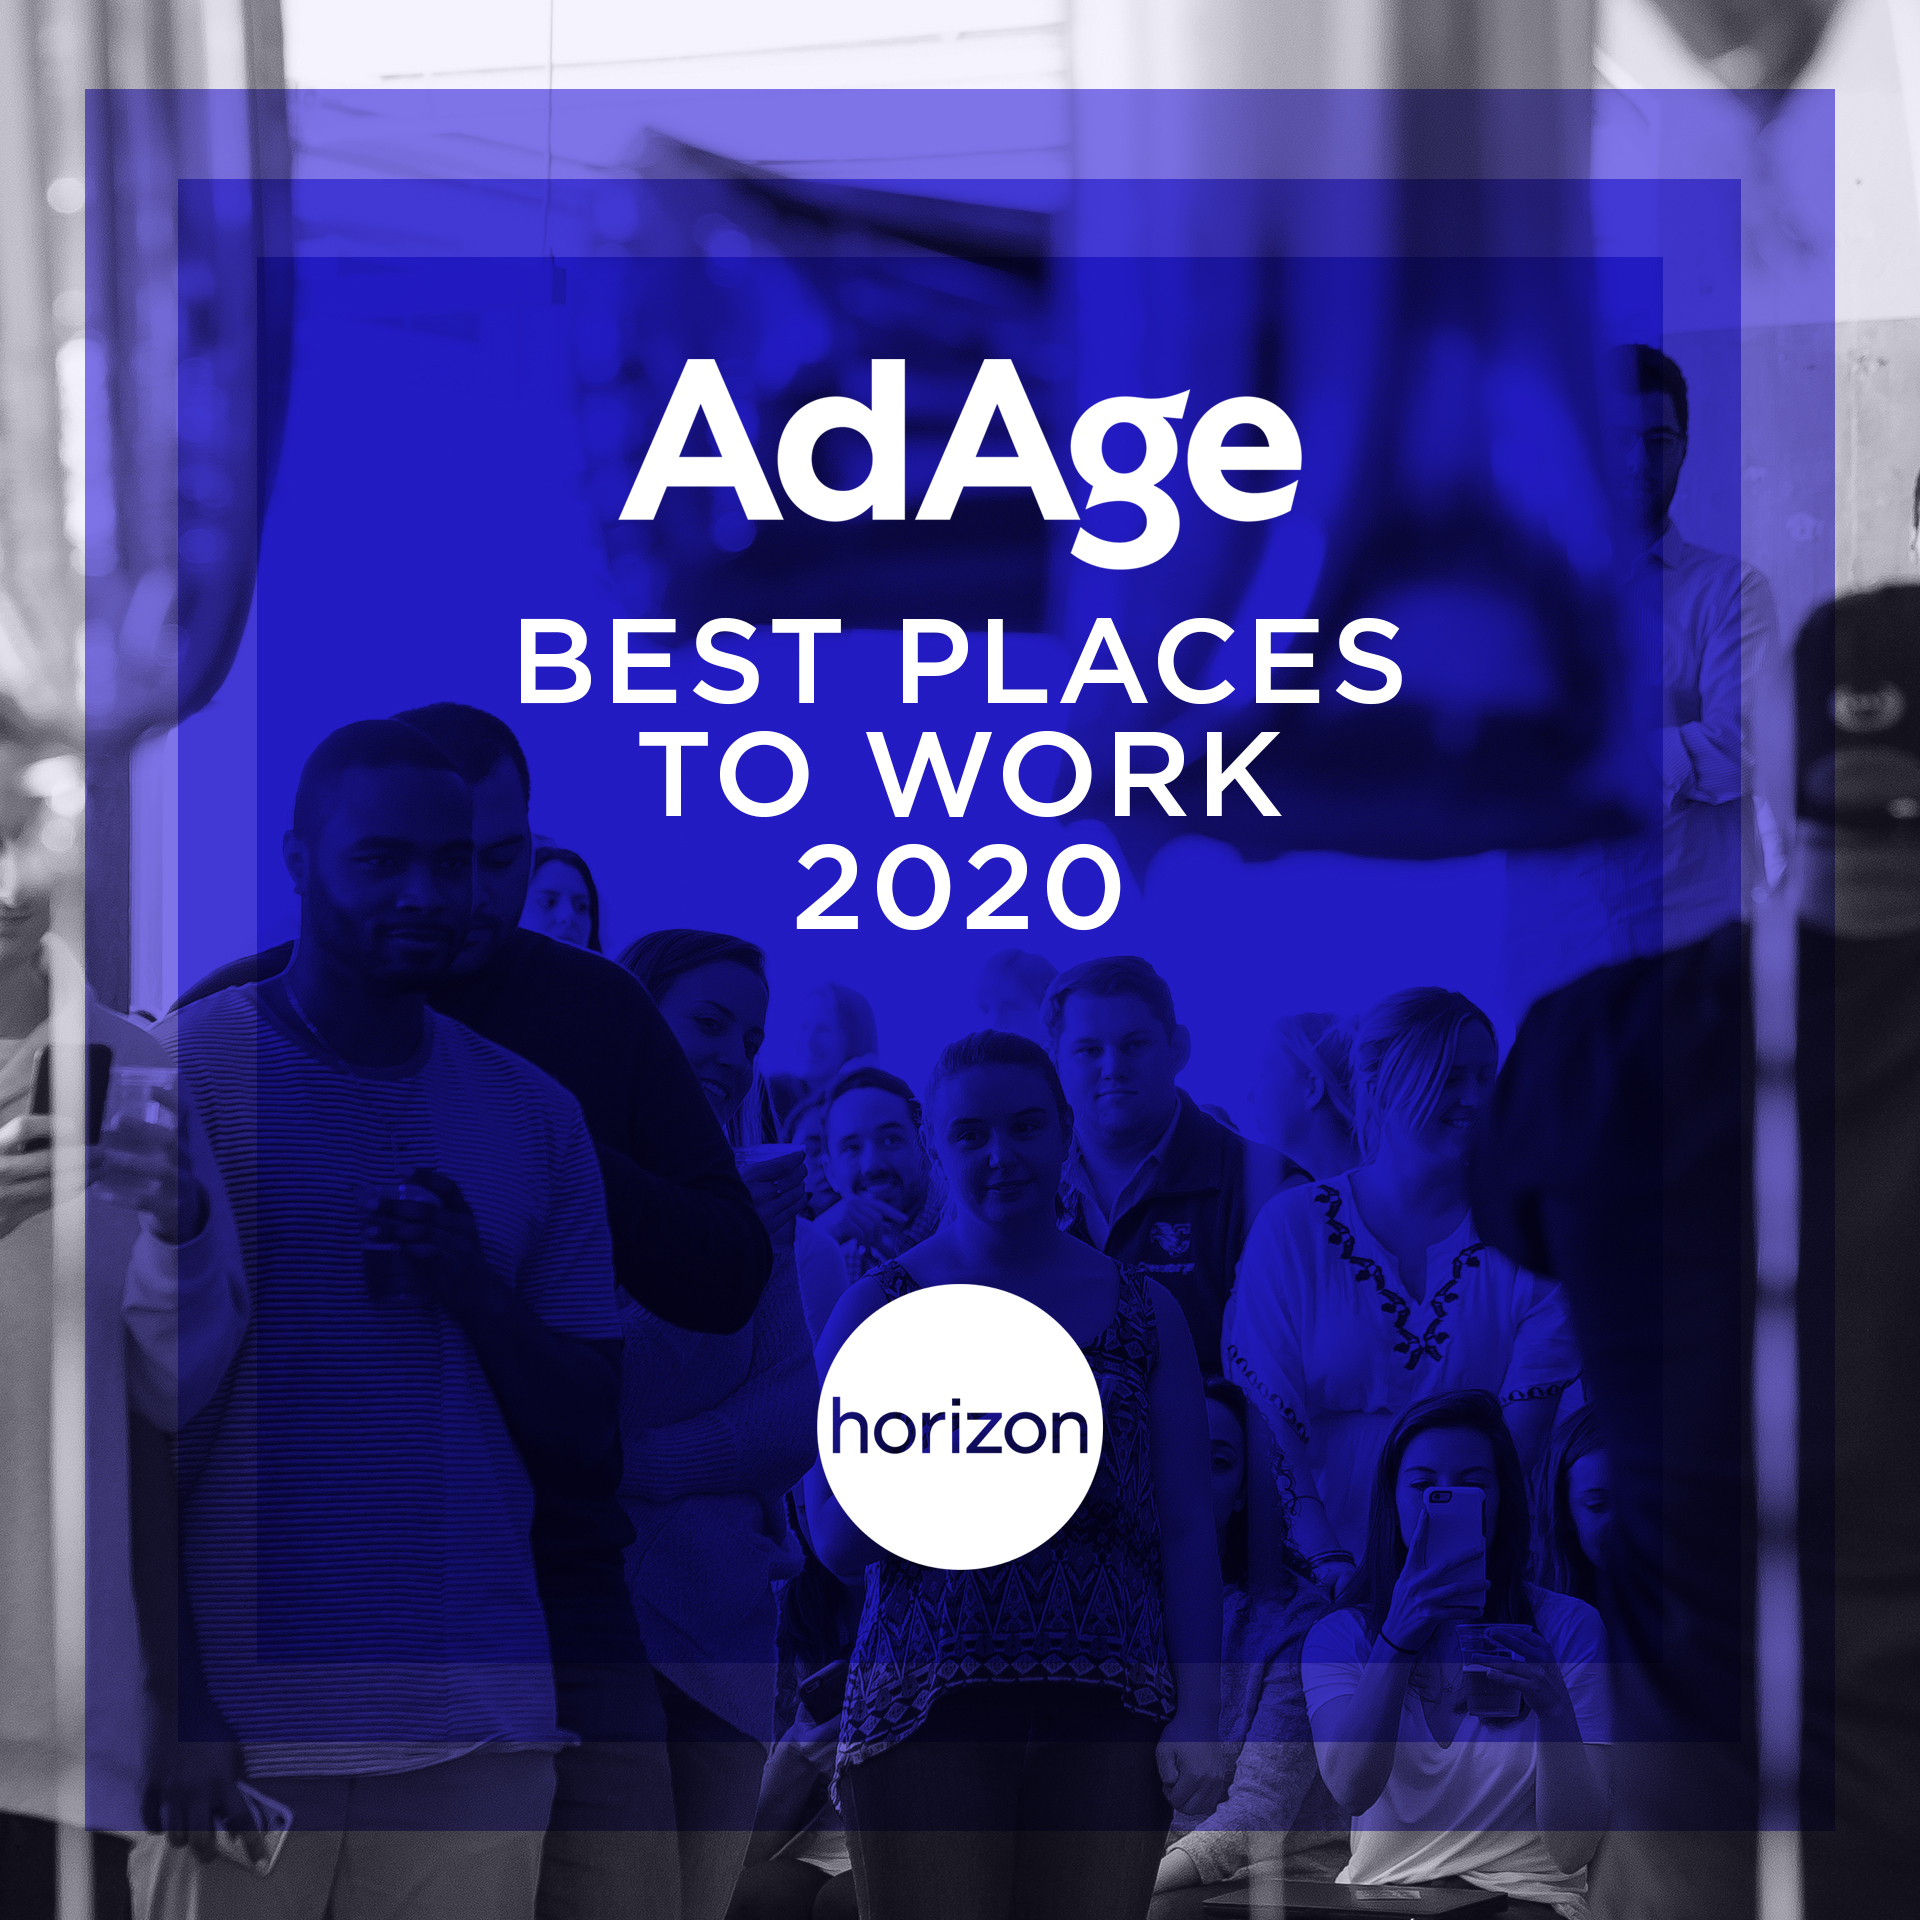 Horizon Media again named as an Adage Best Place to Work.